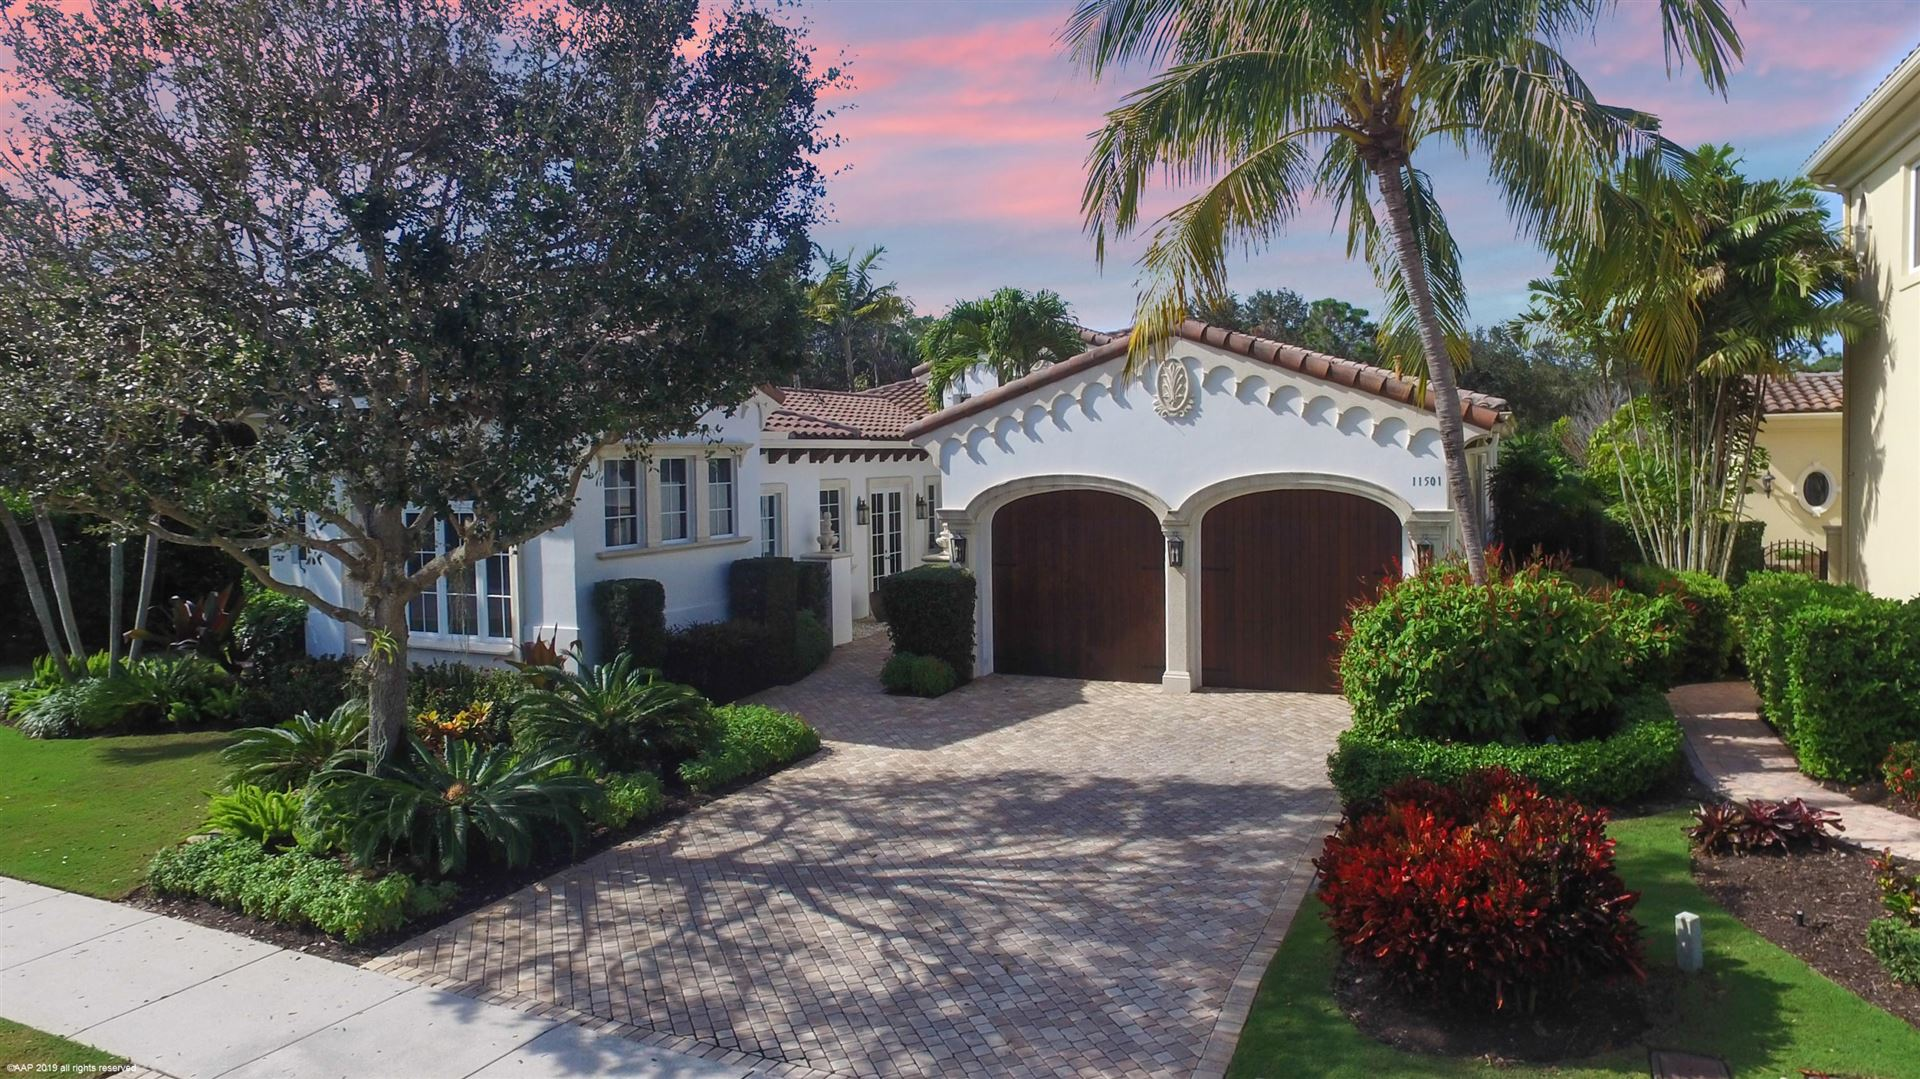 Photo of 11501 Green Bayberry Drive, Palm Beach Gardens, FL 33418 (MLS # RX-10688187)